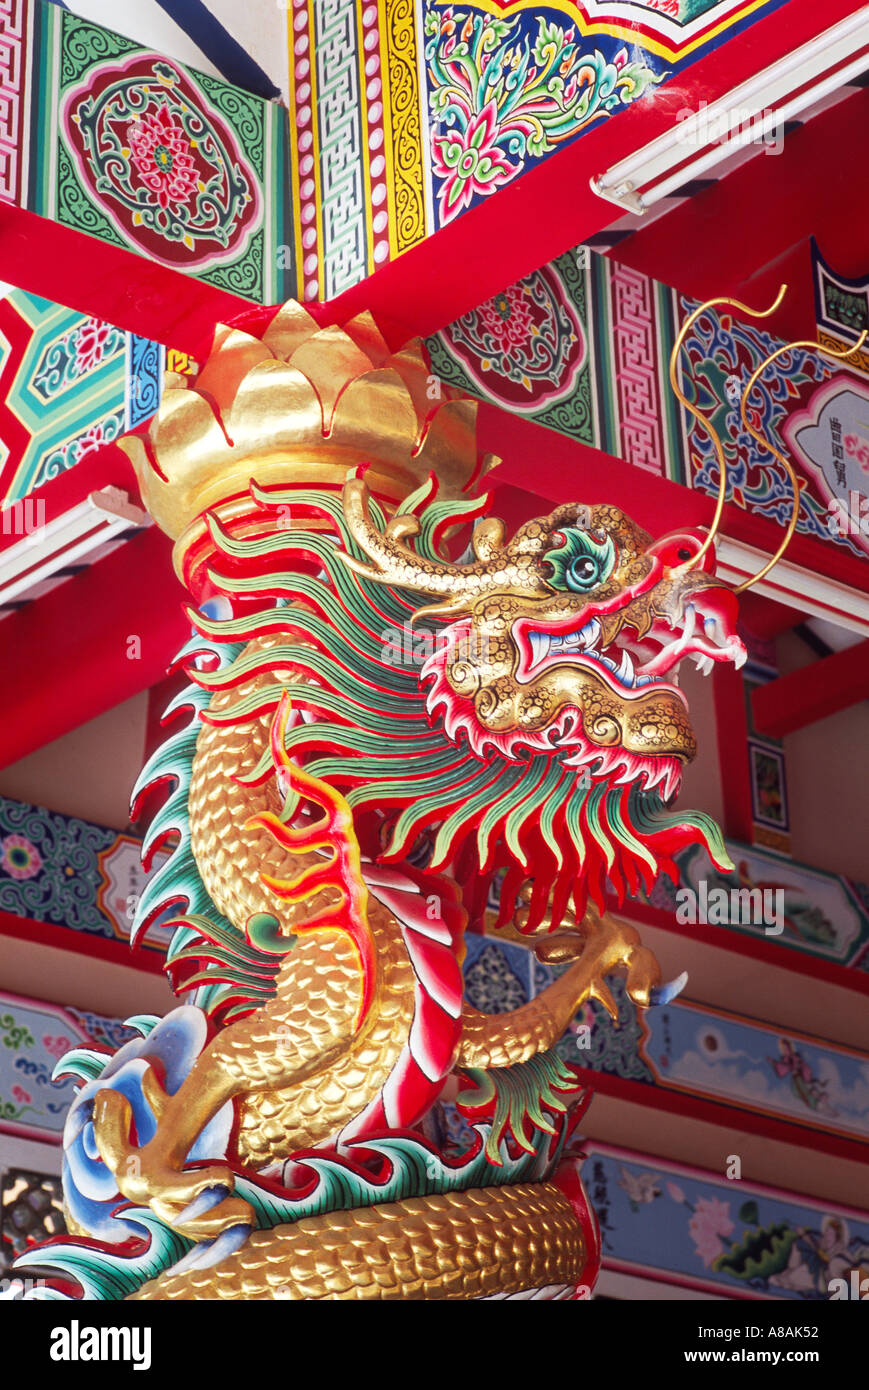 A temple dragon keeps watch over a temple - Stock Image